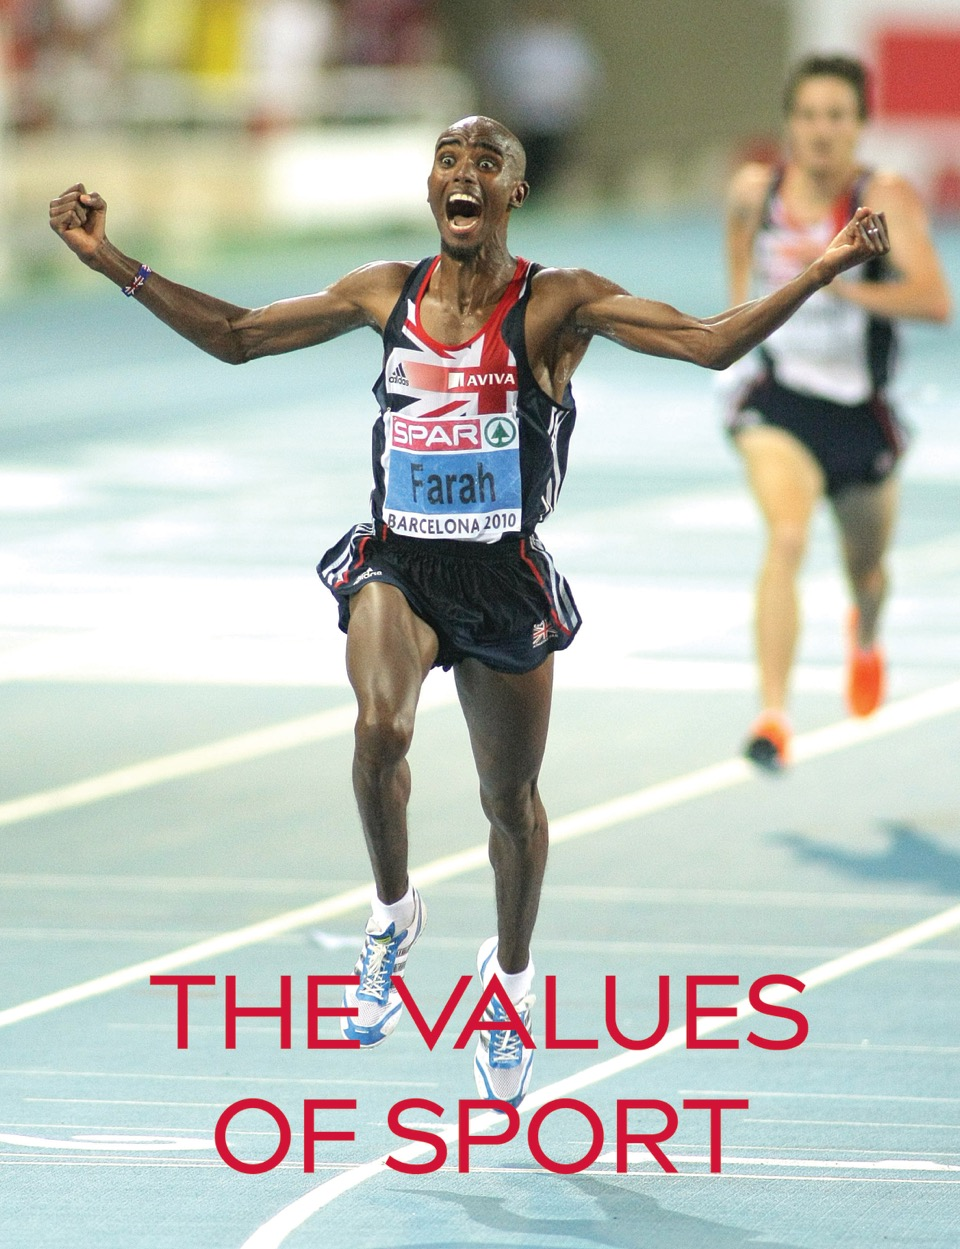 values of sport cover.jpeg